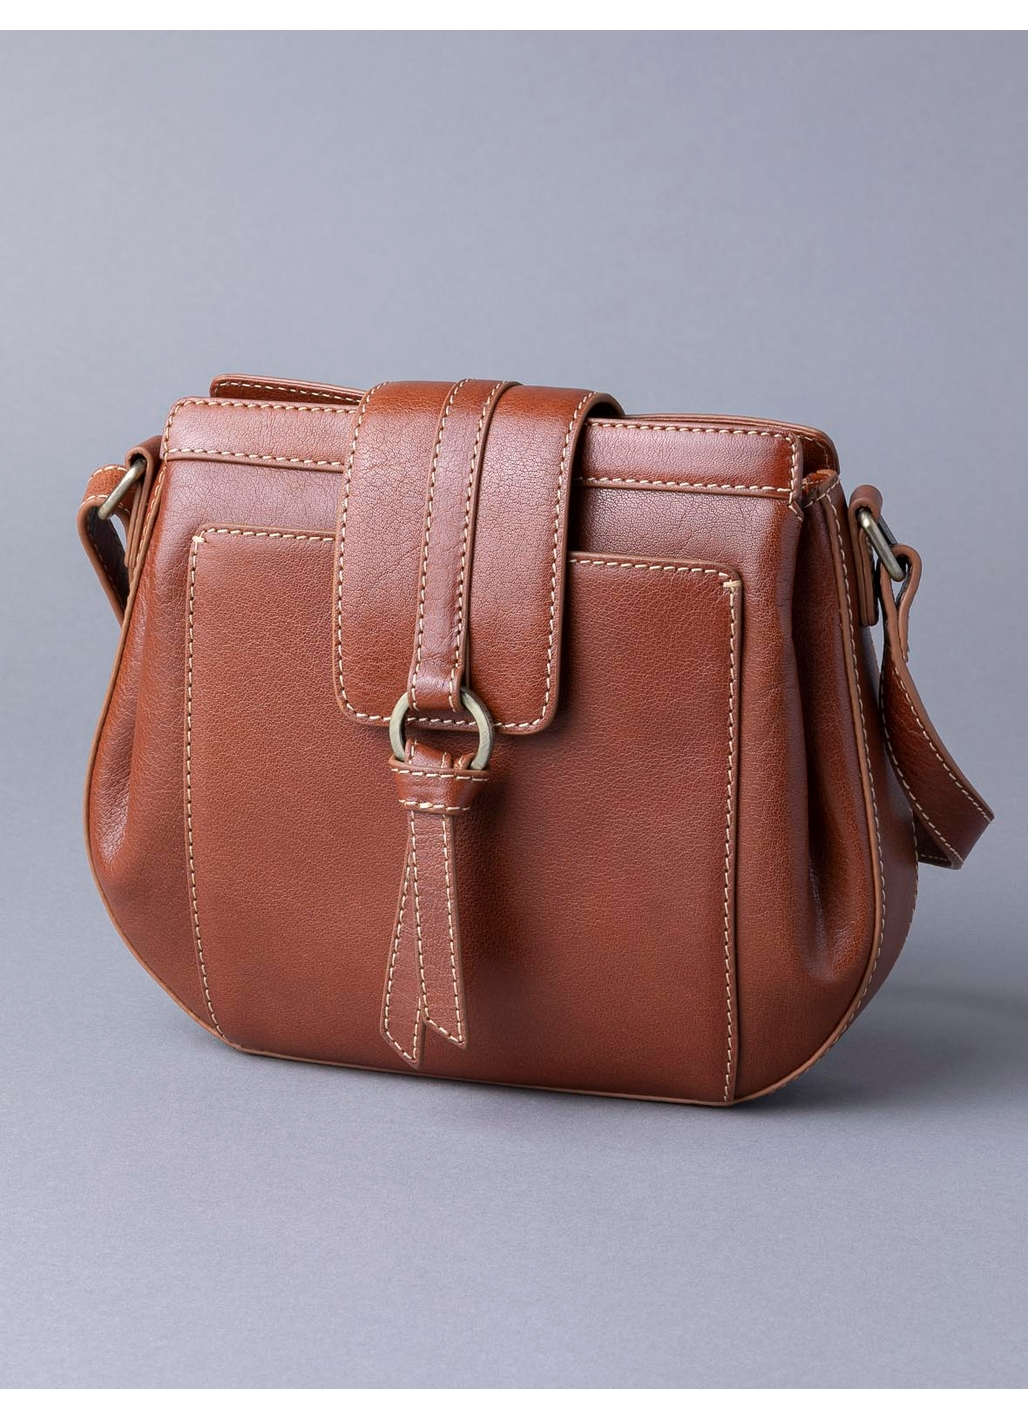 Birthwaite Leather Saddle Bag in Cognac